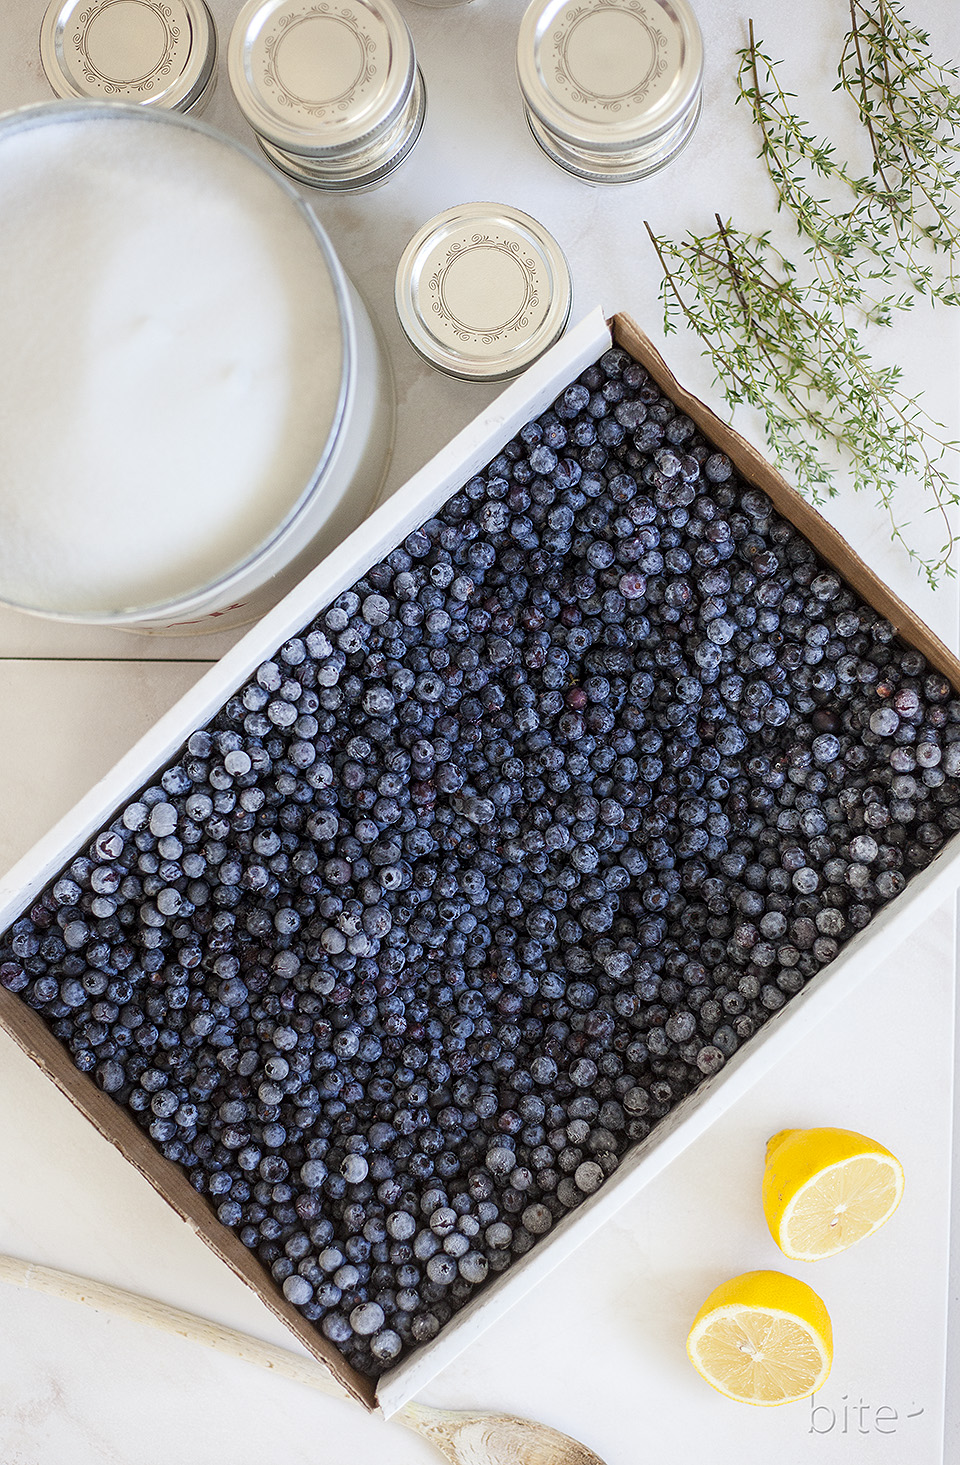 Wild Blueberry with Thyme Jam